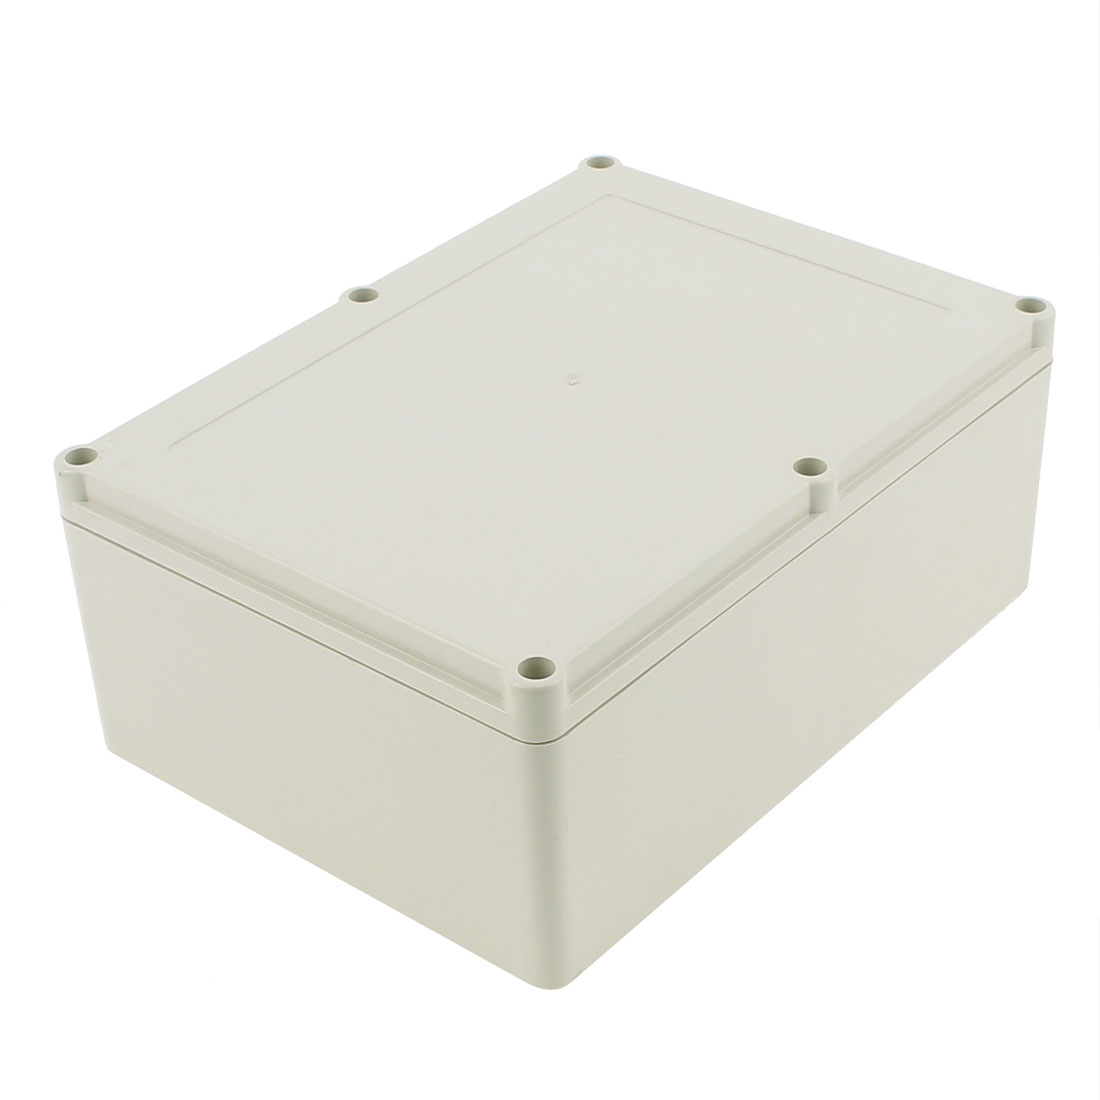 210 x 155 x 87mm Dustproof IP65 Junction Box Terminal Connecting Enclosure